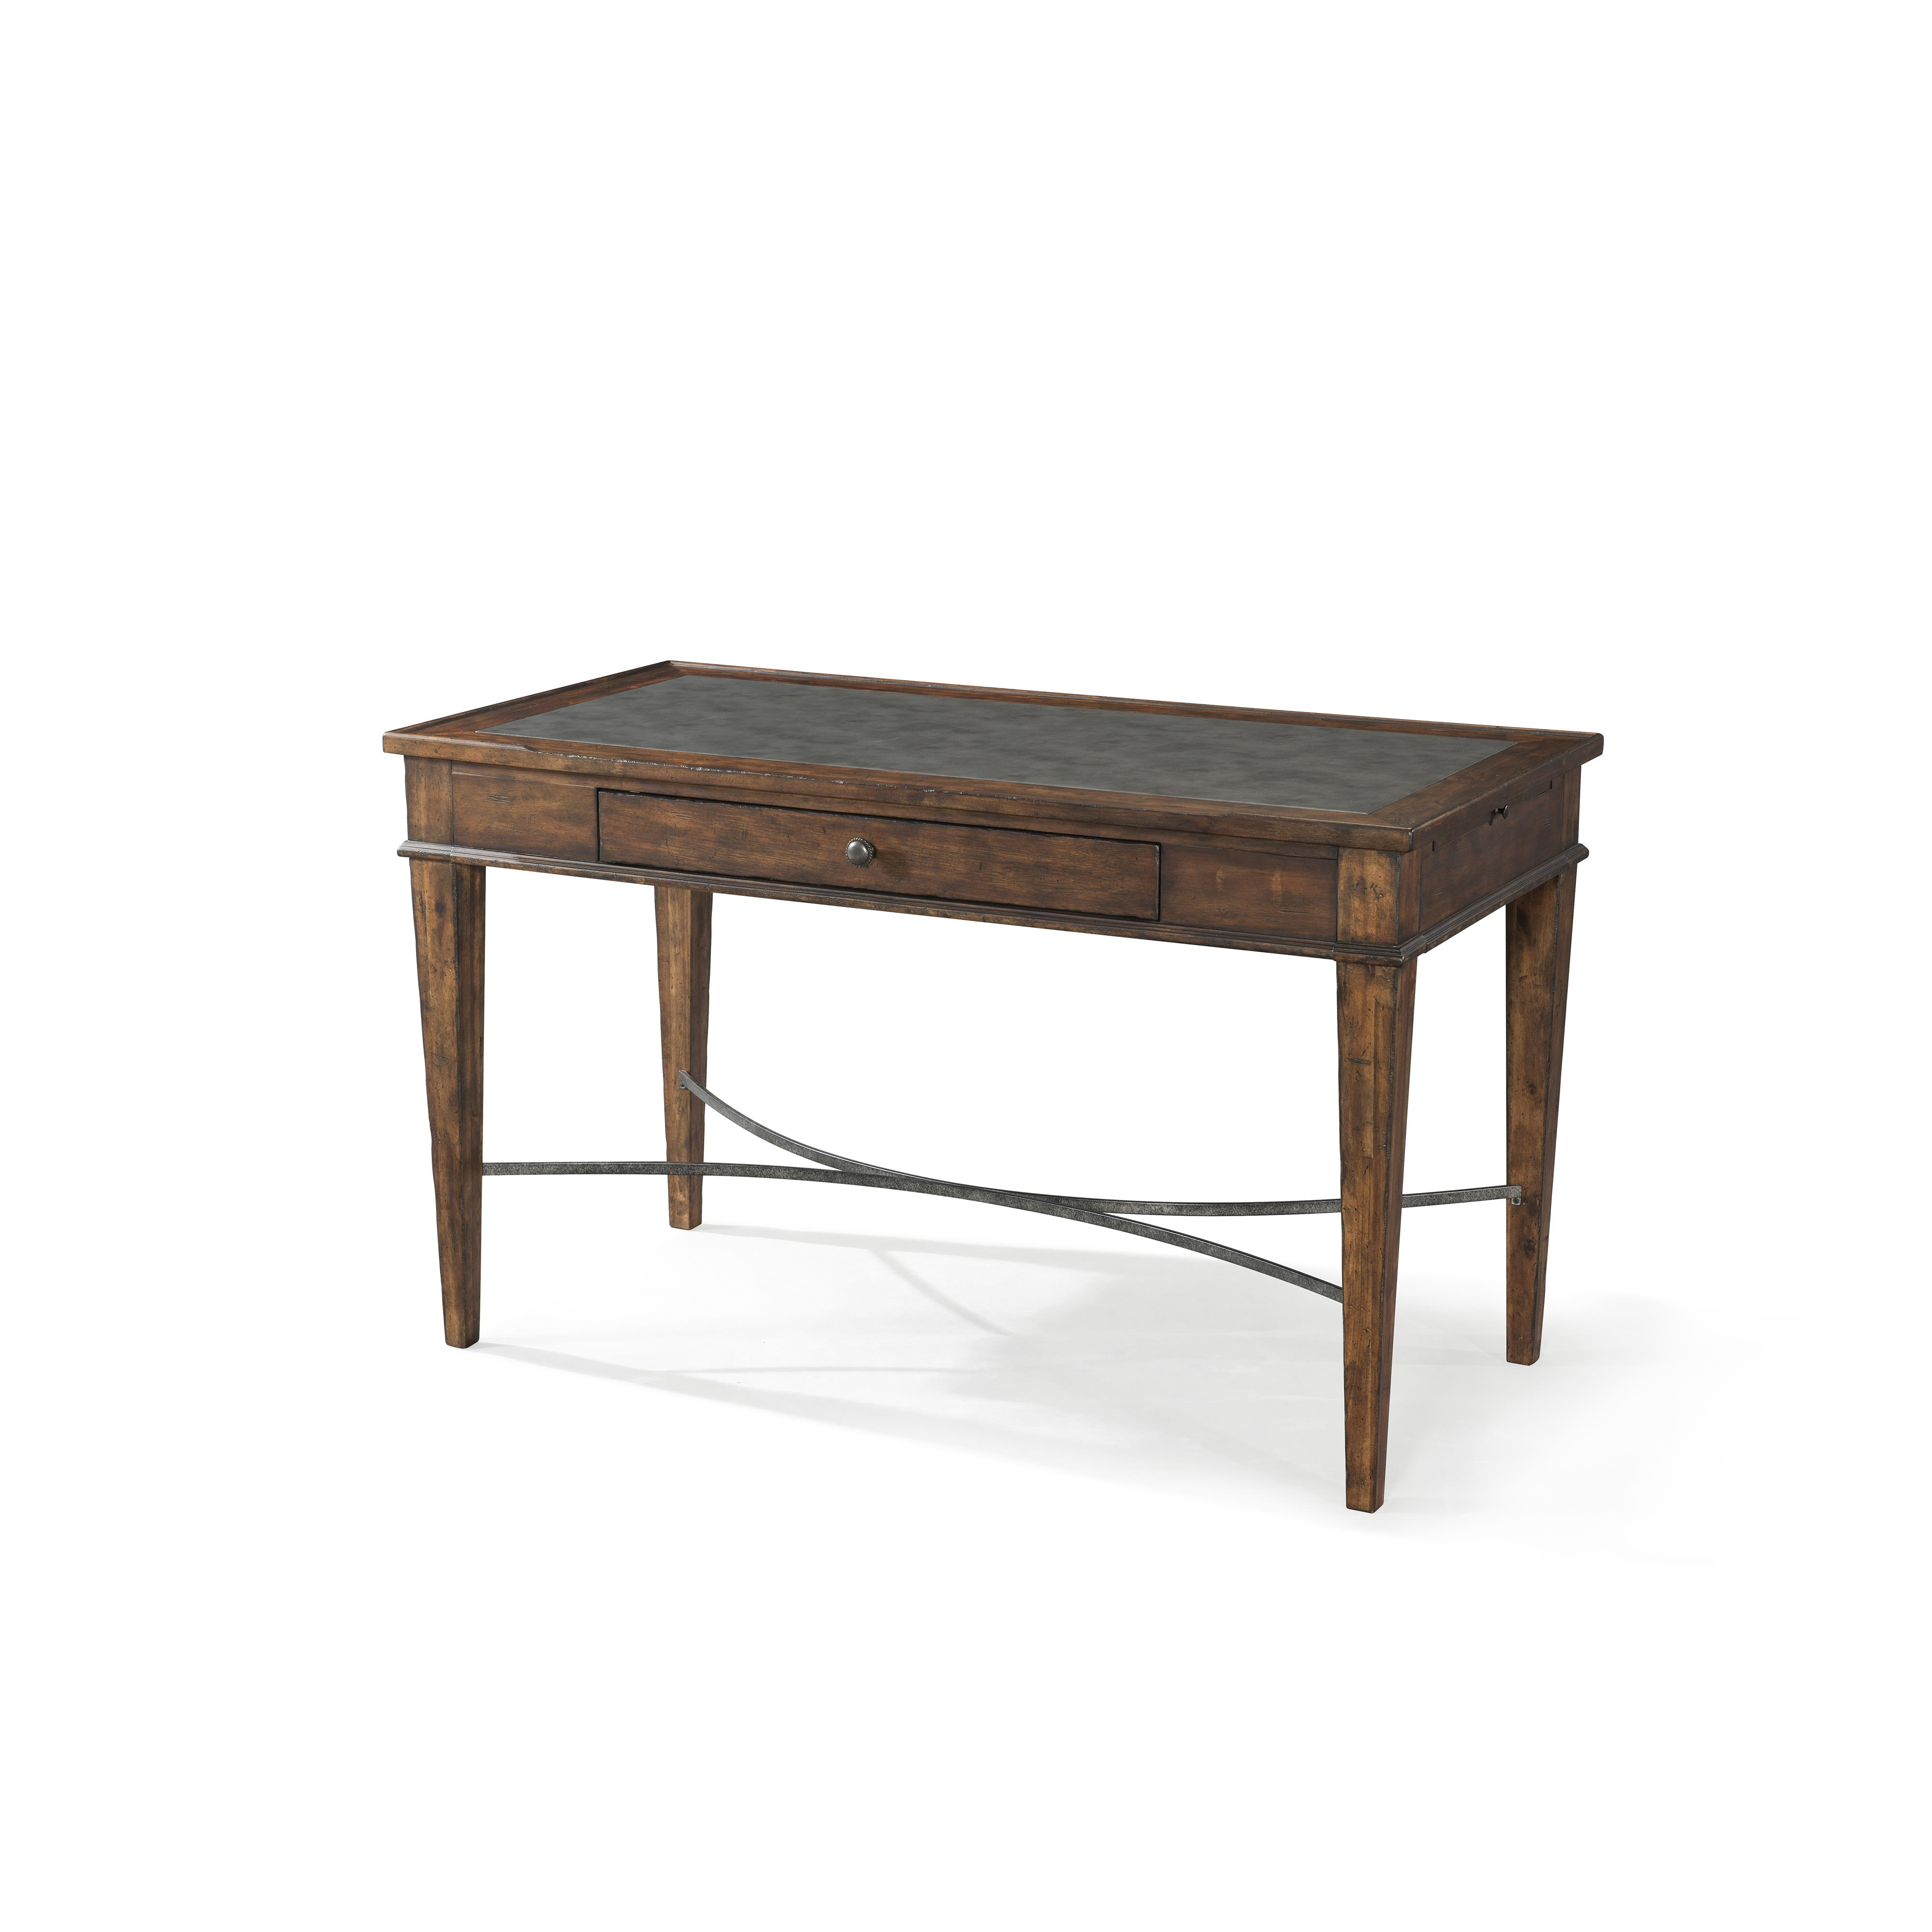 Trisha Yearwood Home Xxx's and Ooo's Desk by Trisha Yearwood Home Collection by Klaussner at Sam Levitz Outlet